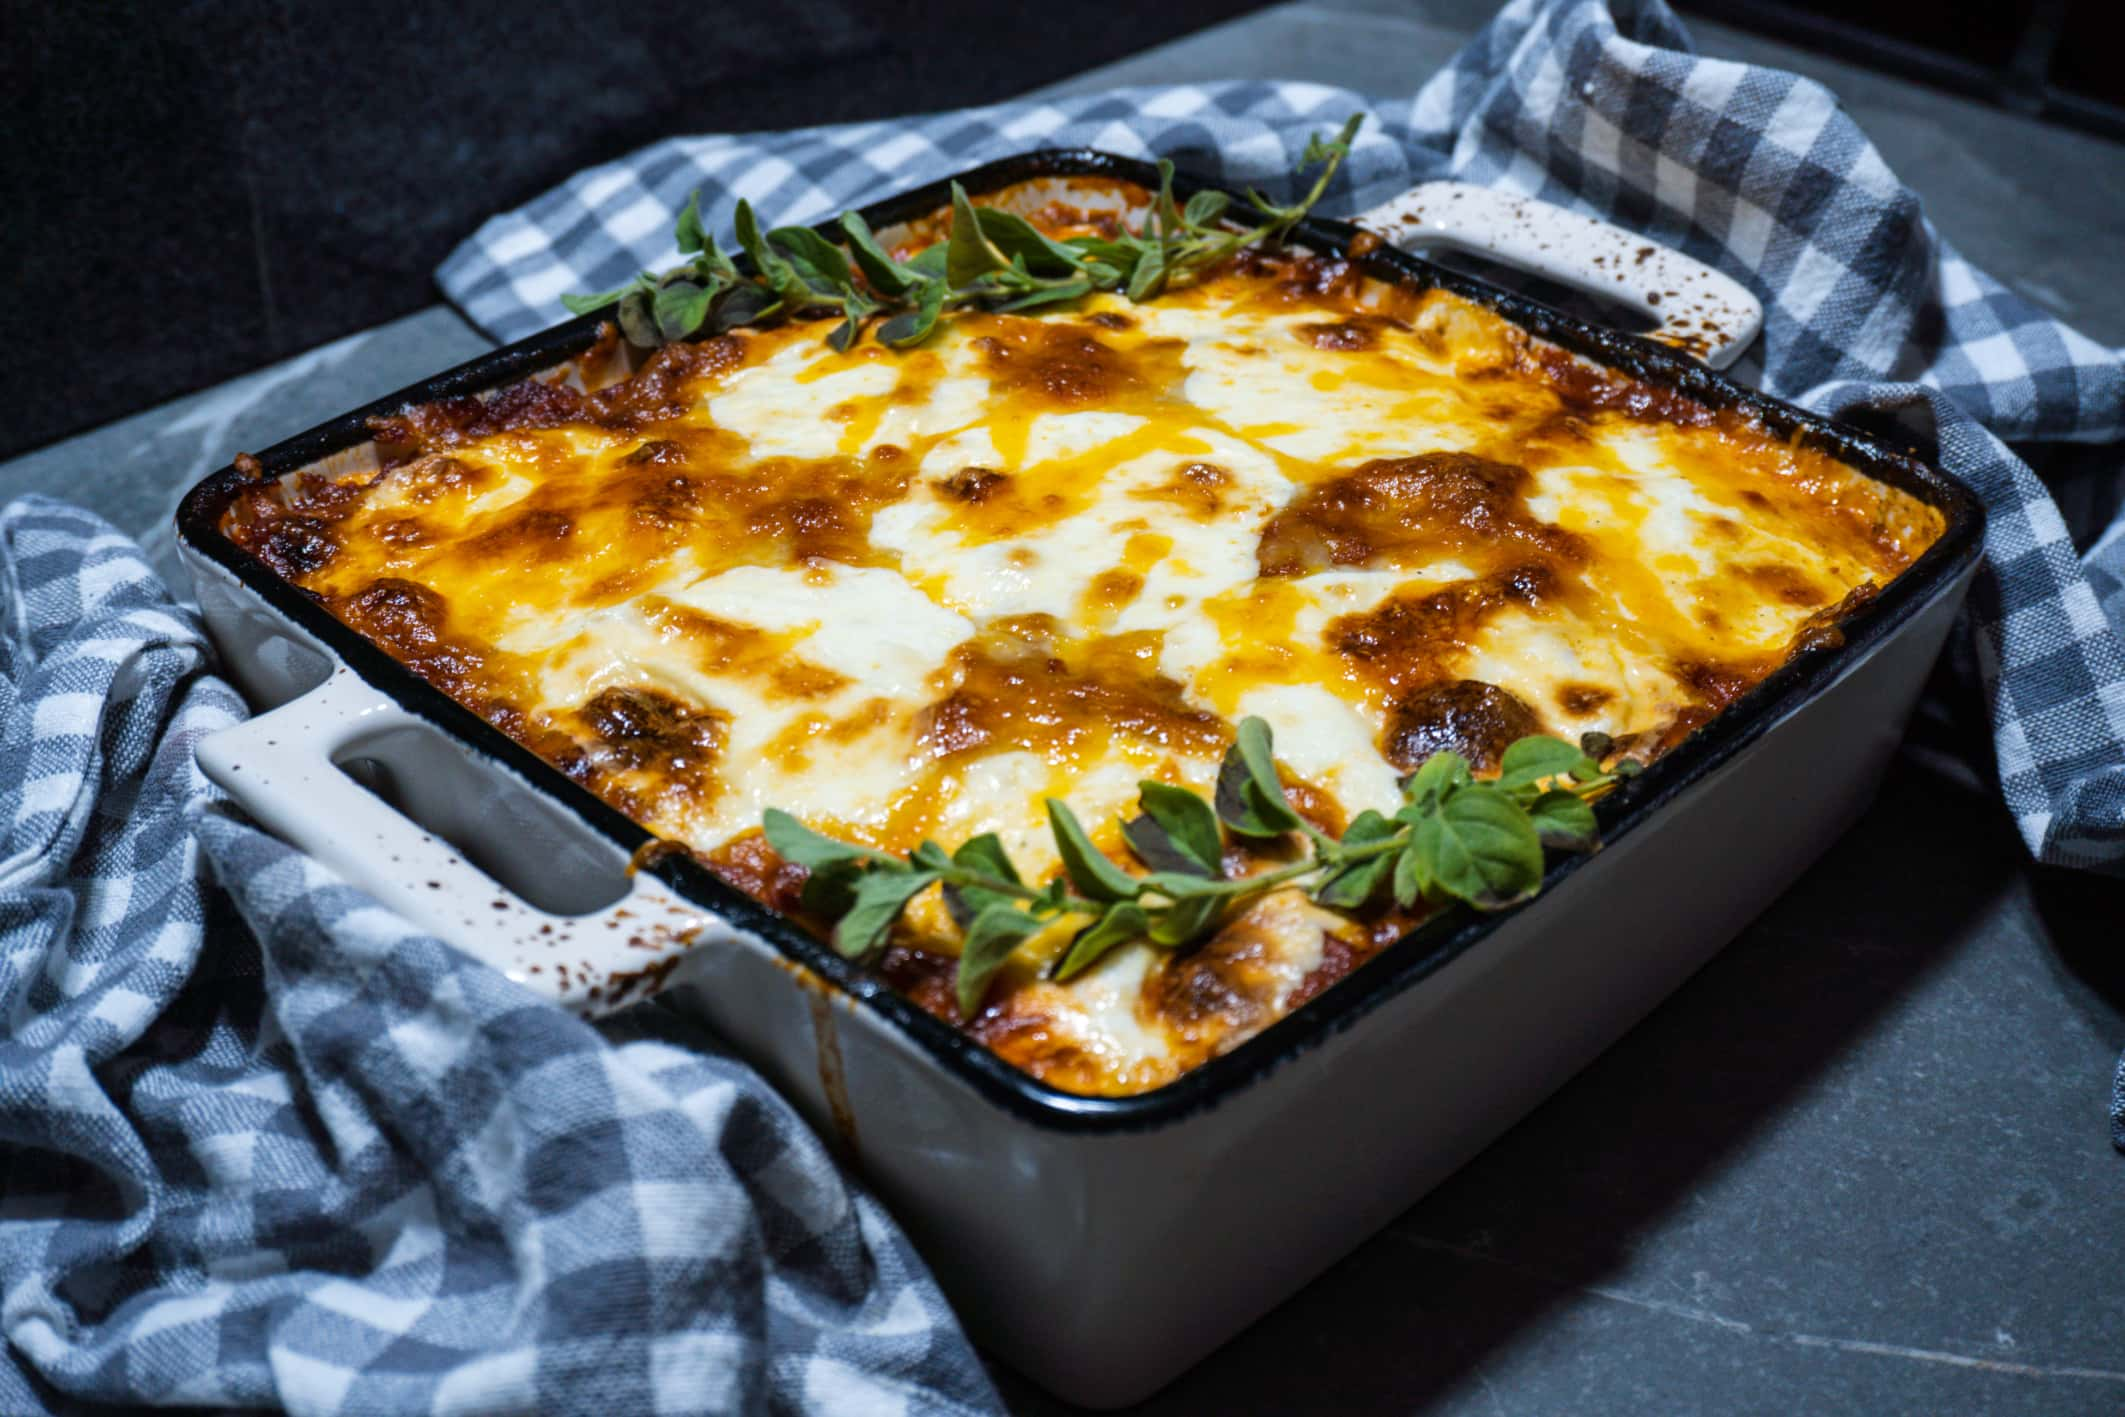 Out of the oven this delicious Keto Lasagna in white and blue stoneware baking dish.